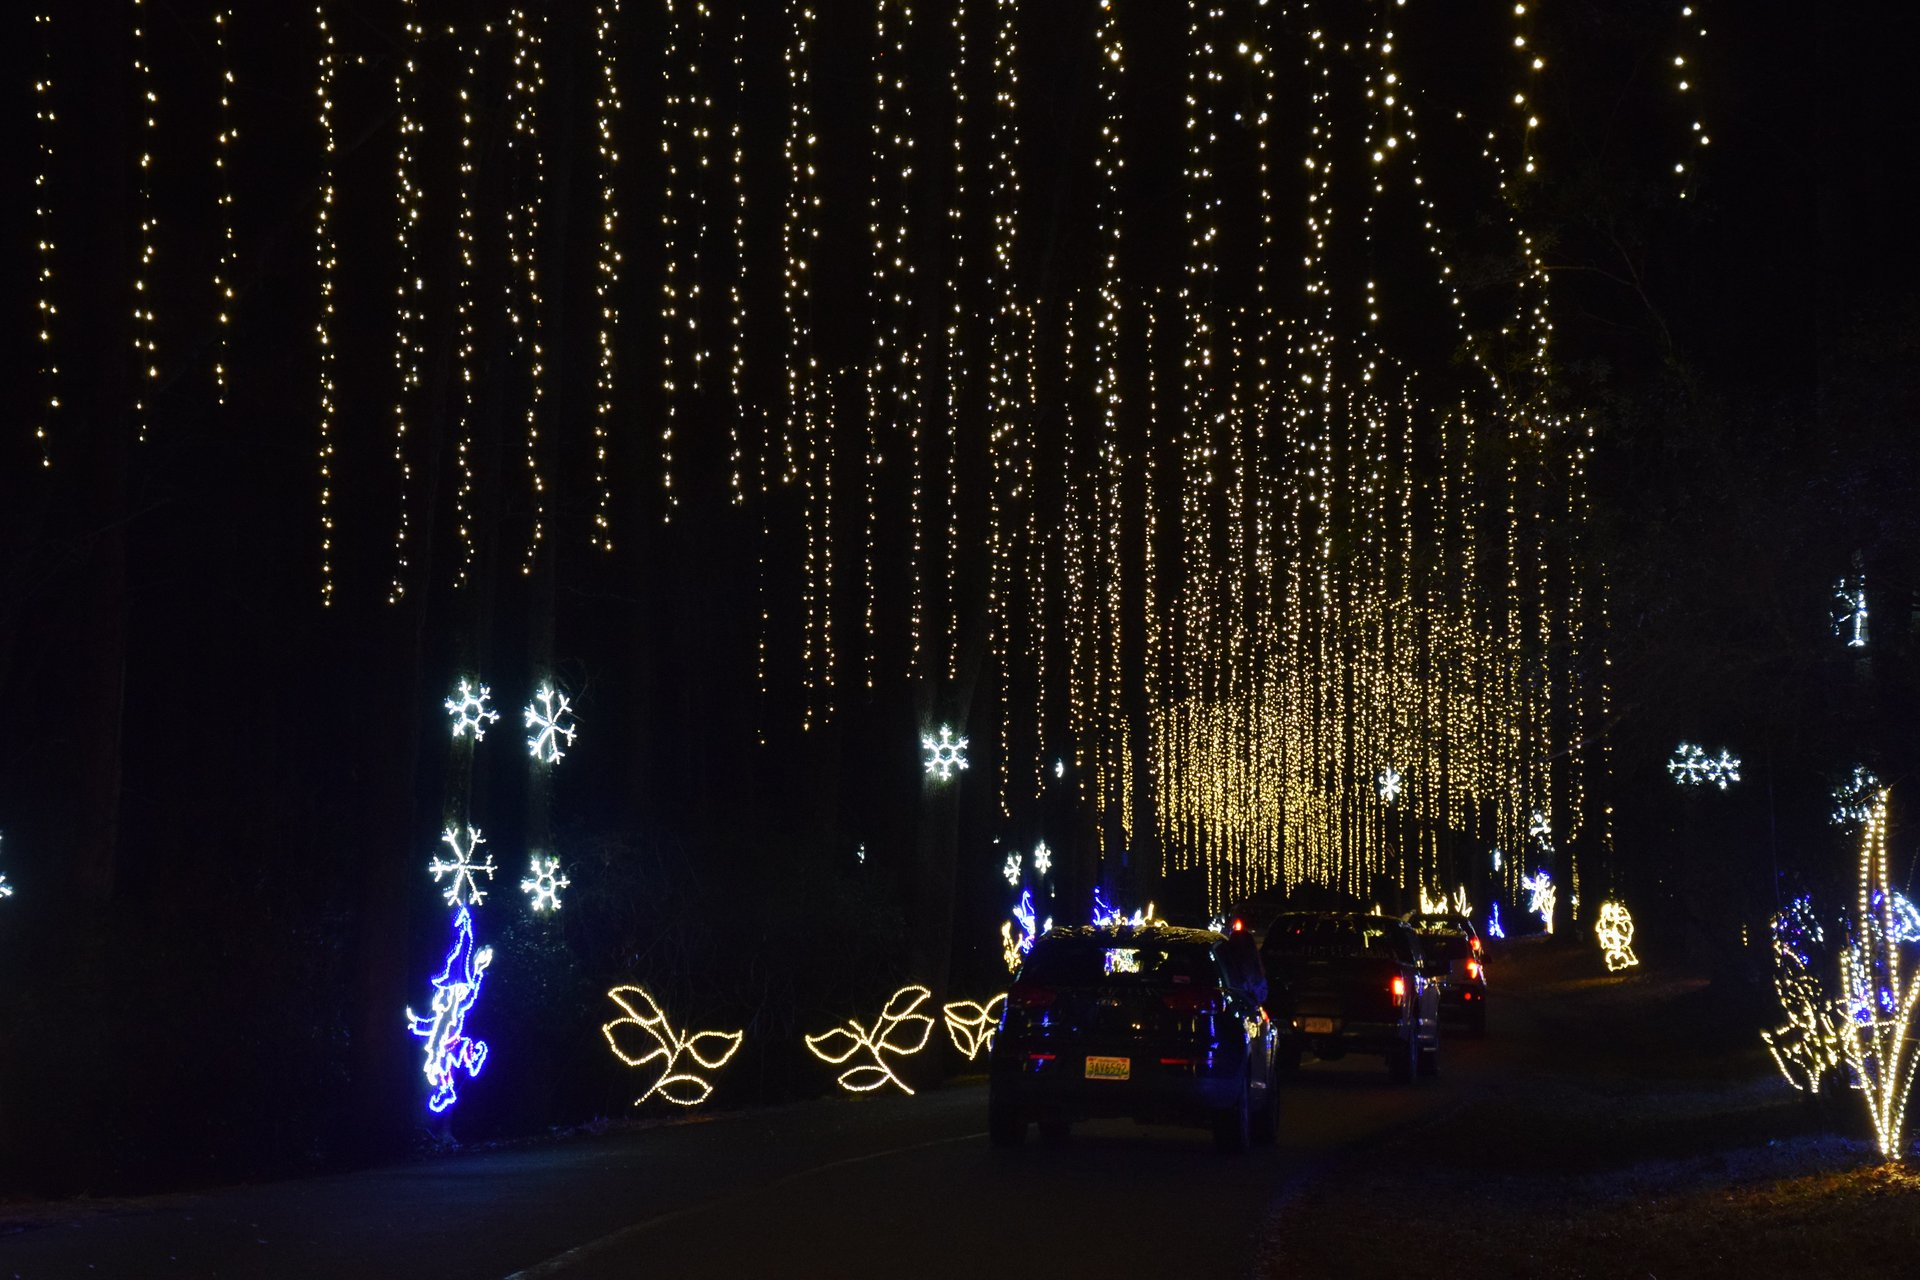 Callaway Gardens Fantasy in Lights in Georgia - Best Season 2020